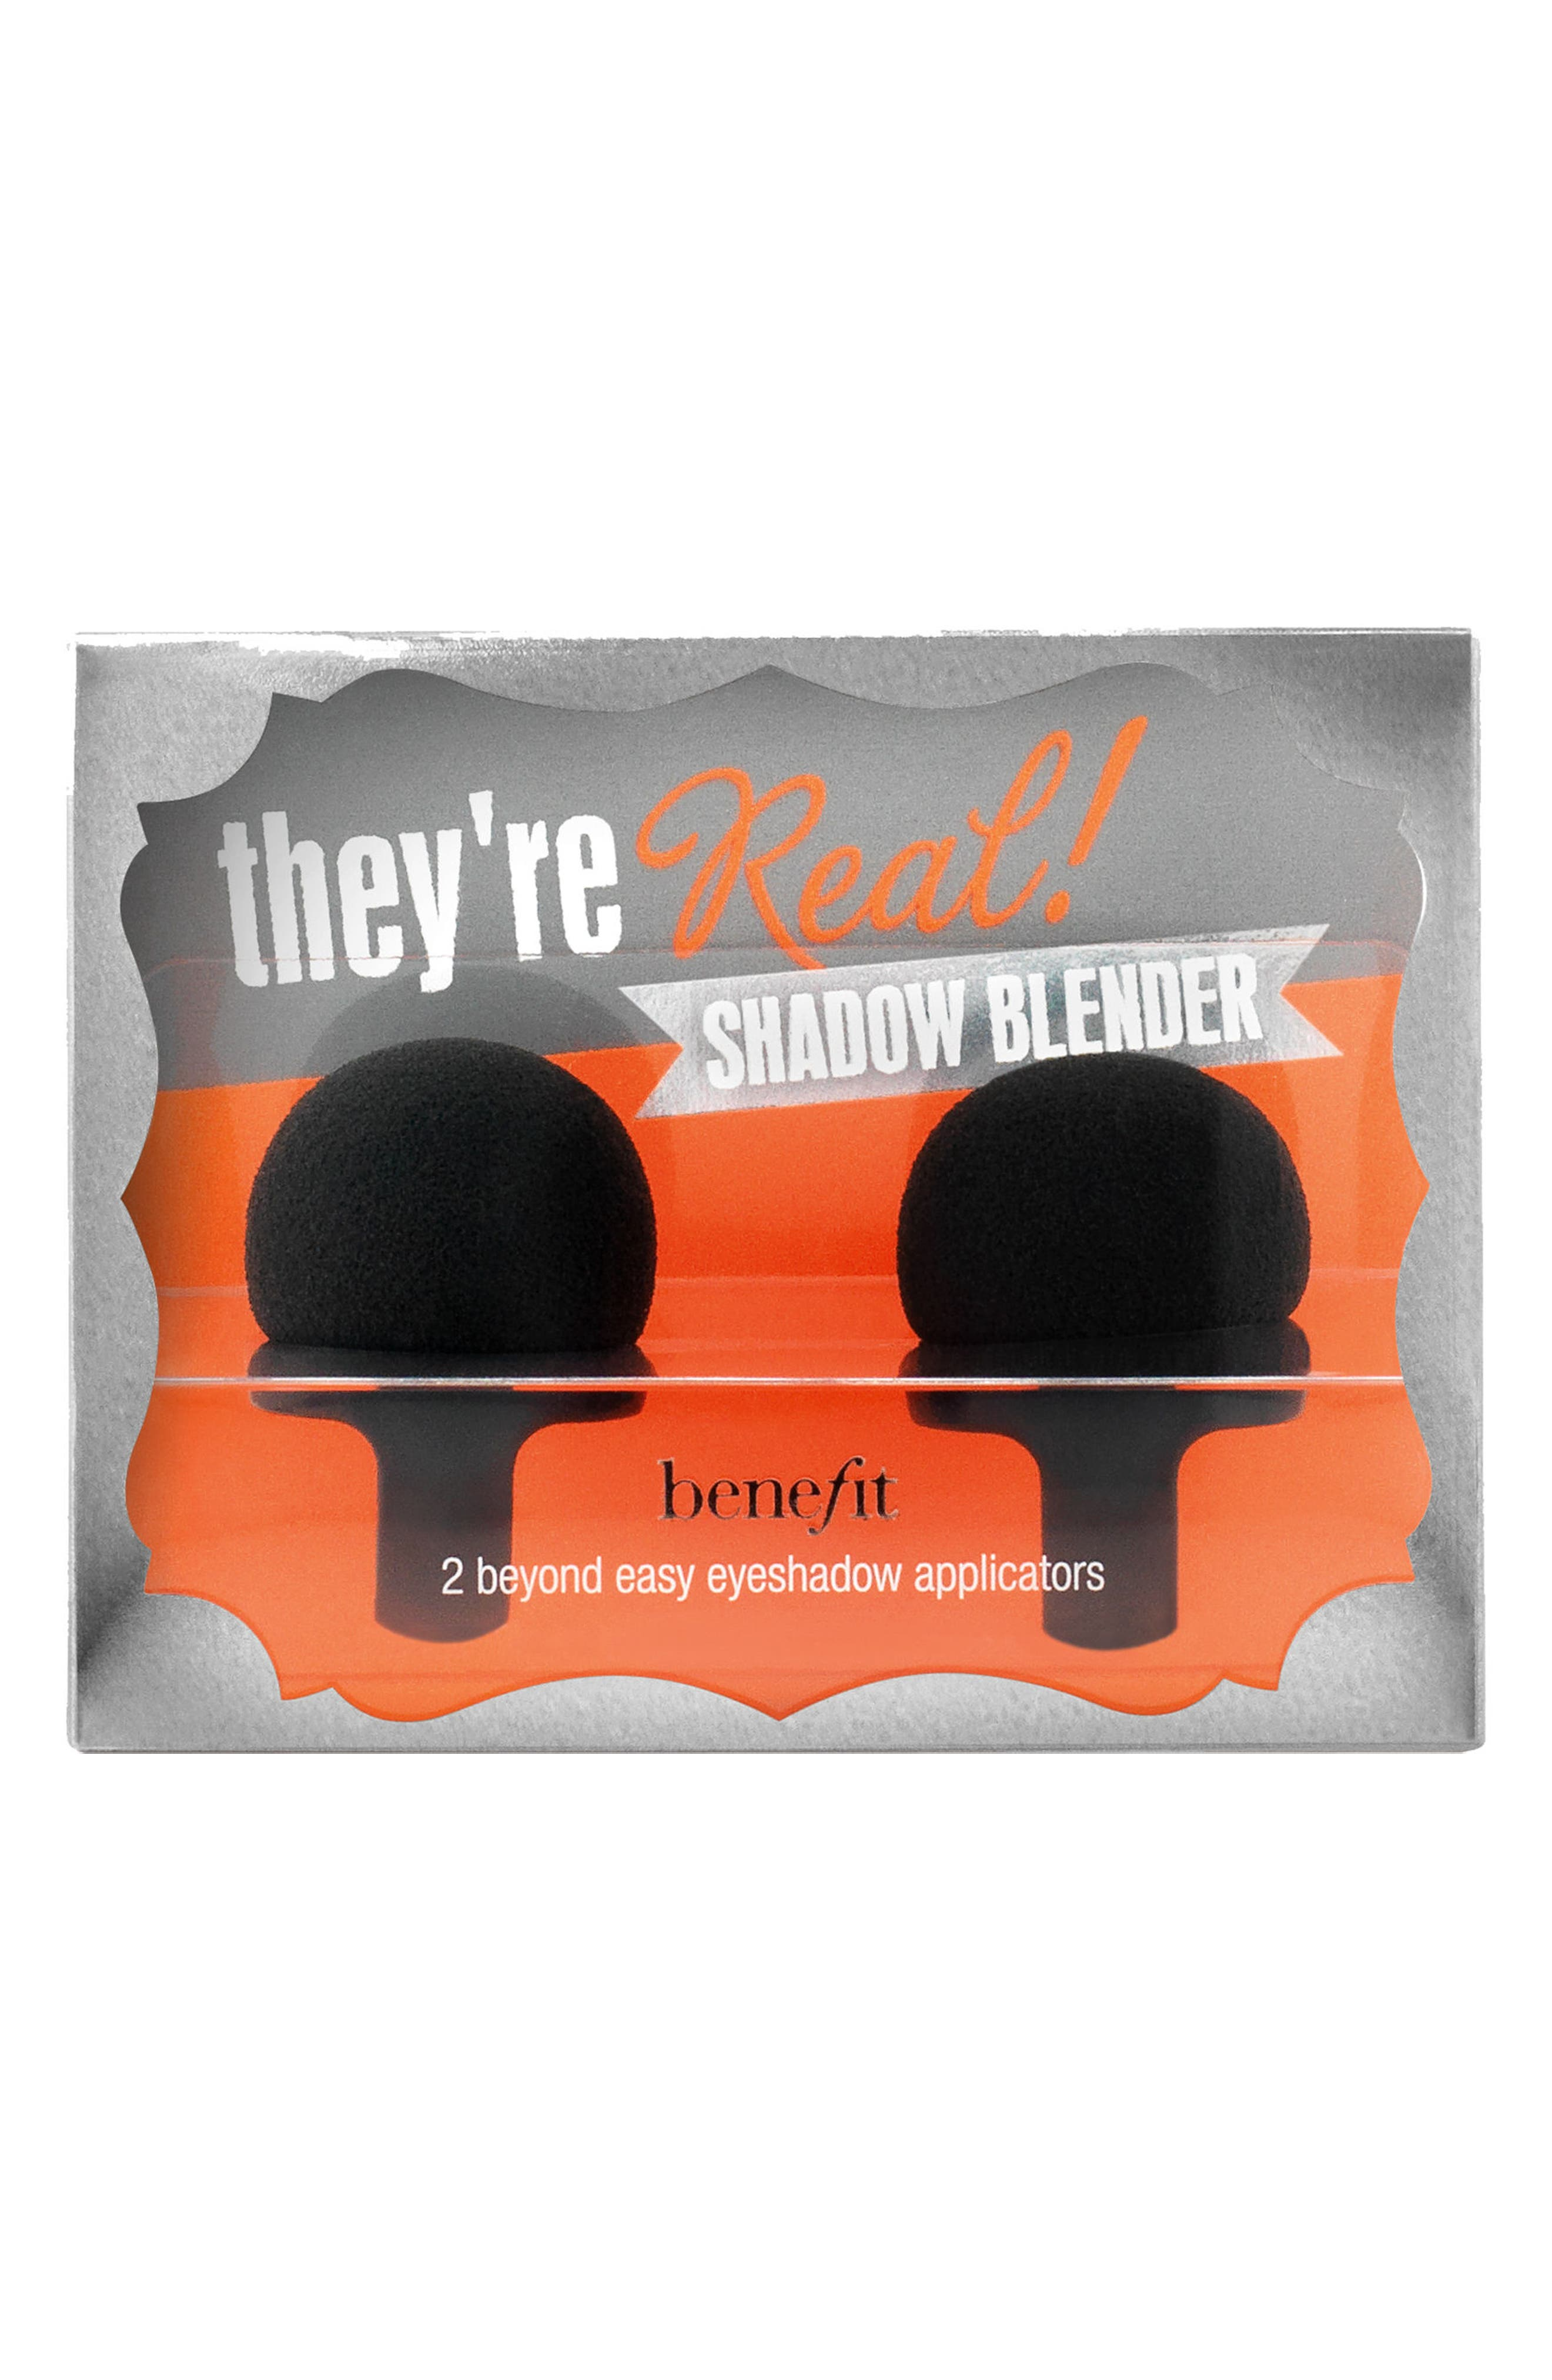 Main Image - Benefit They're Real! ShadowBlender Duo Beyond Easy Eyeshadow Applicators